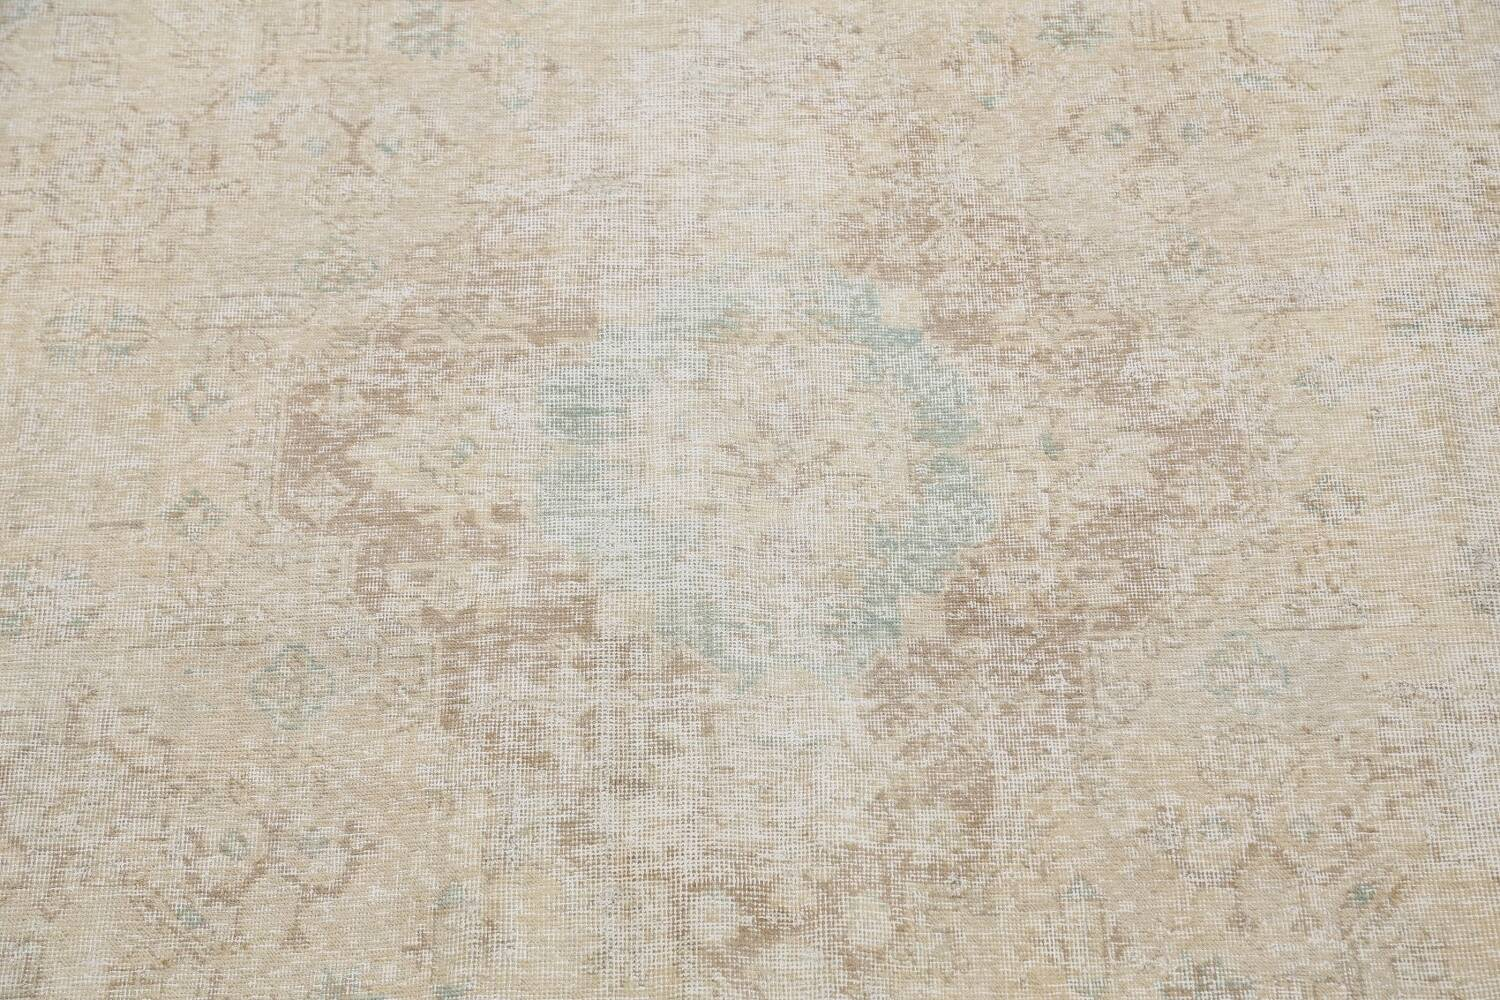 Antique Muted Distressed Tabriz Persian Area Rug 9x13 image 4